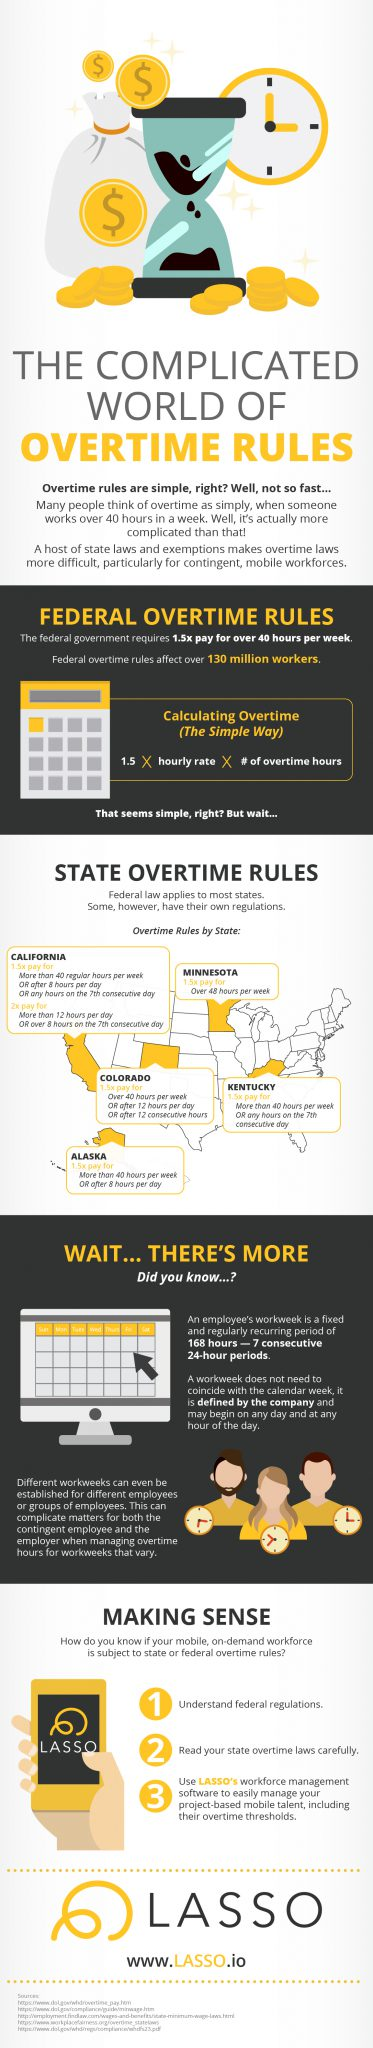 Overtime Rules by State - Map